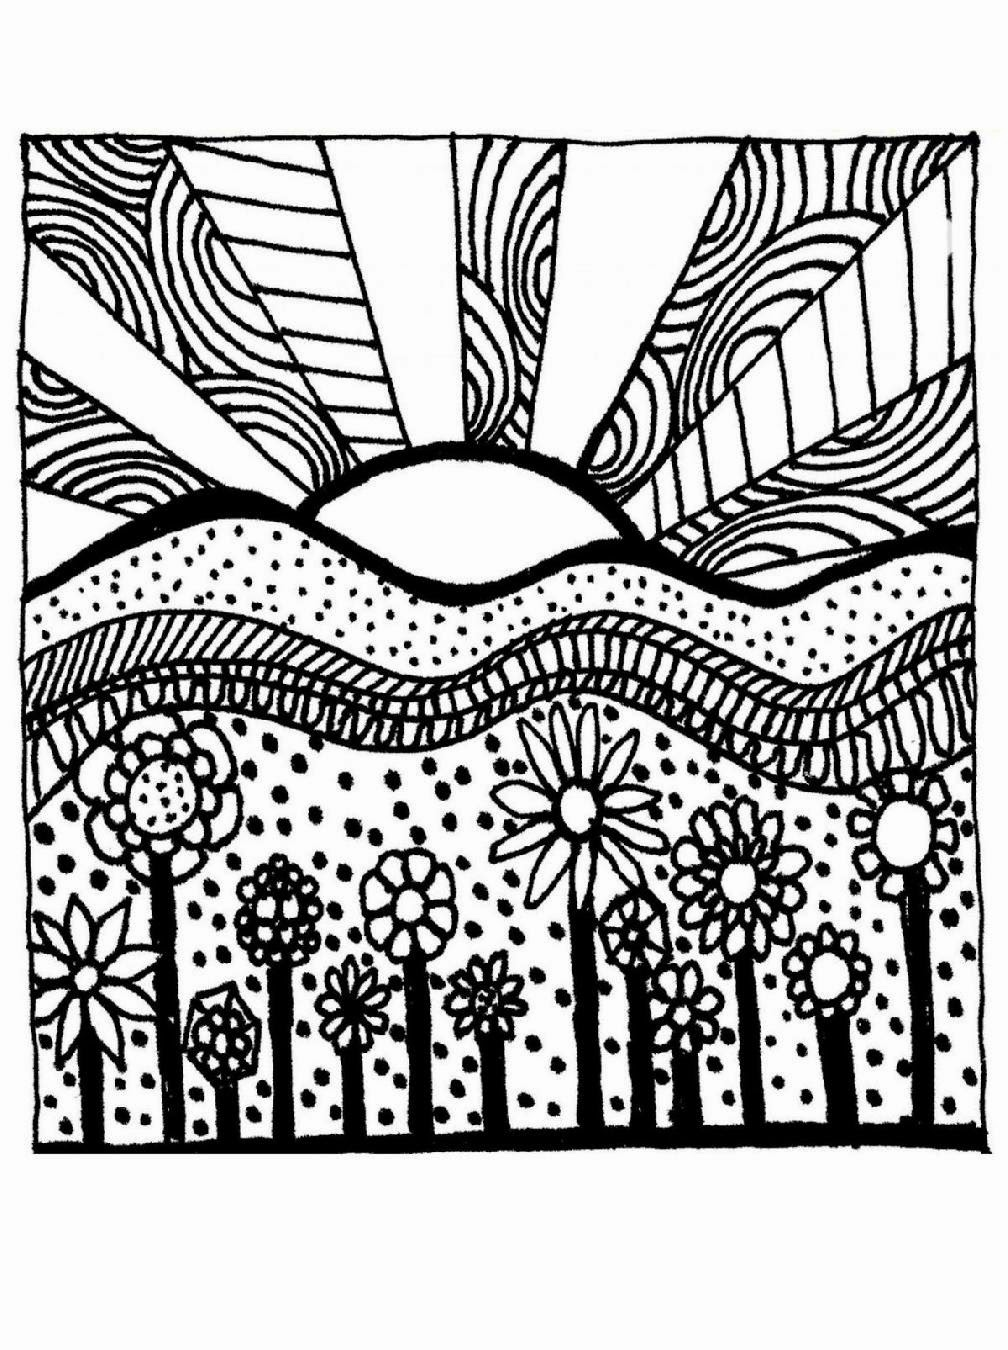 Adult Coloring Sheets Free Coloring Sheet Colouring In Pages For Adults